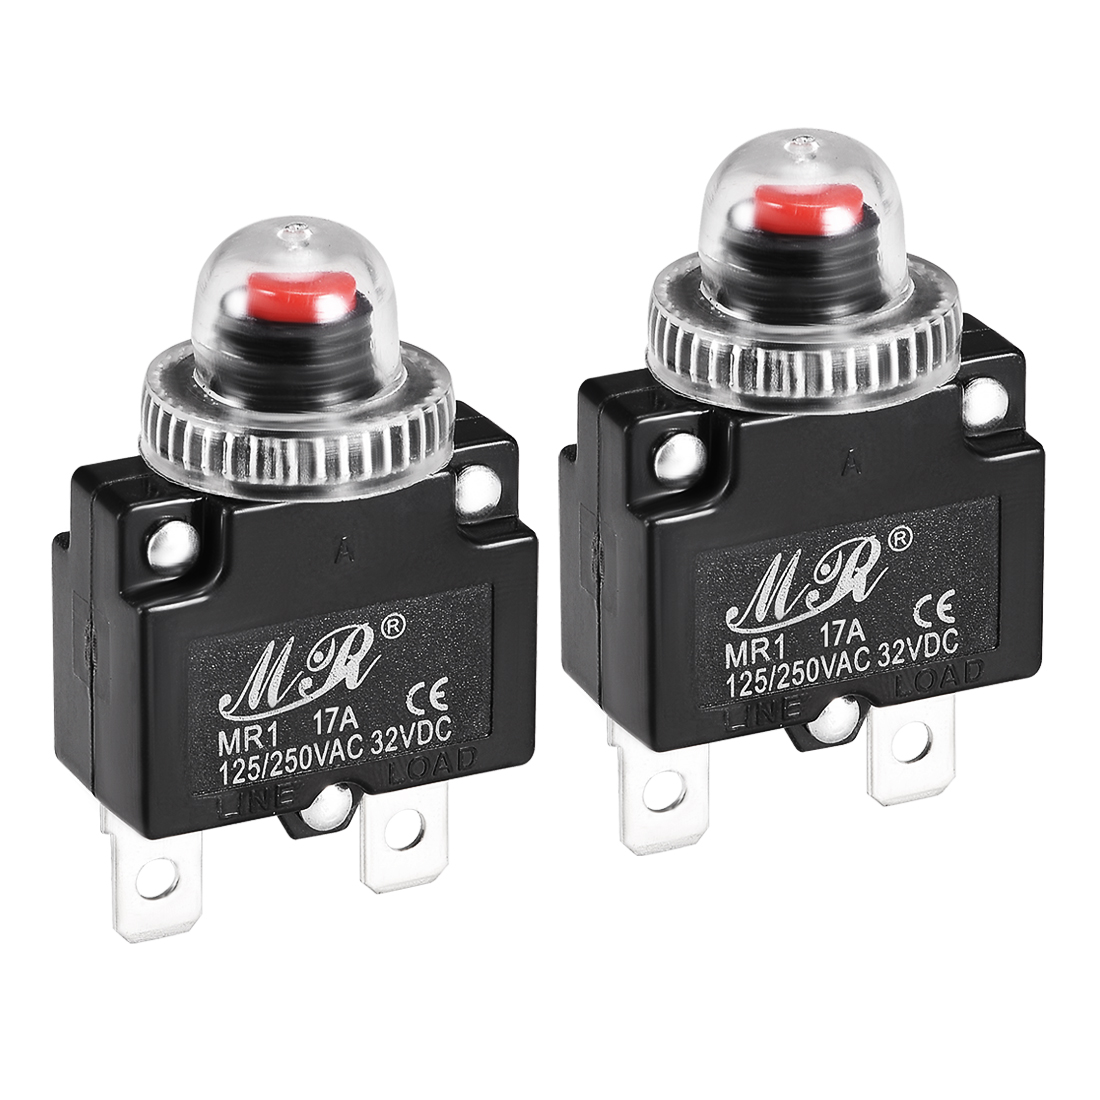 2 Pcs 17A 125/250V Push Button Reset Overload Protector Thermal Circuit Breaker